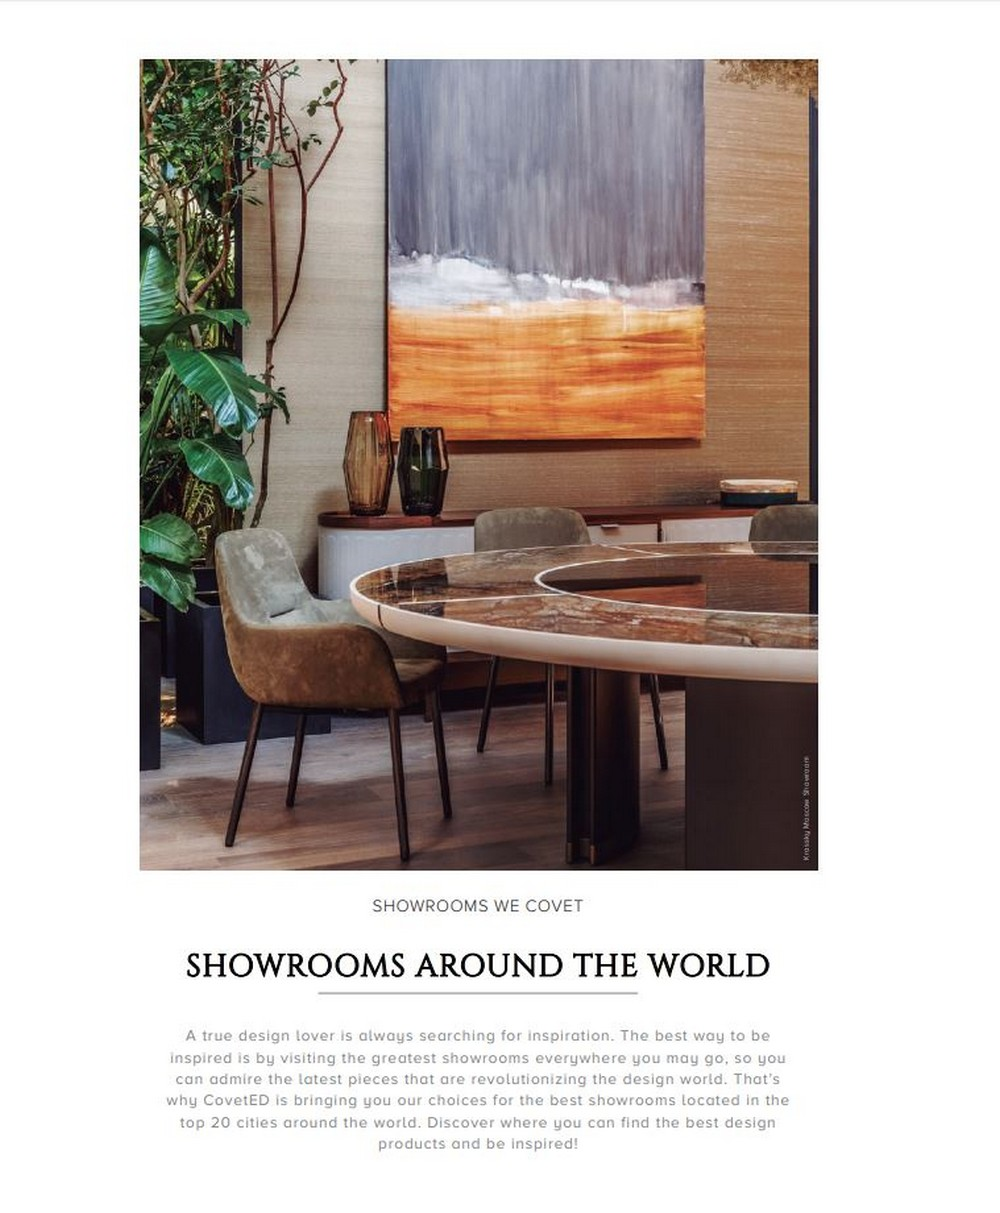 Maison et Objet 2020 - Here Is Why You Should By CovetED's 16th Issue! maison et objet Maison et Objet 2020 – Here Is Why You Should By CovetED's 16th Issue! Maison et Objet 2020 Here Is Why You Should By CovetEDs 16th Issue 5